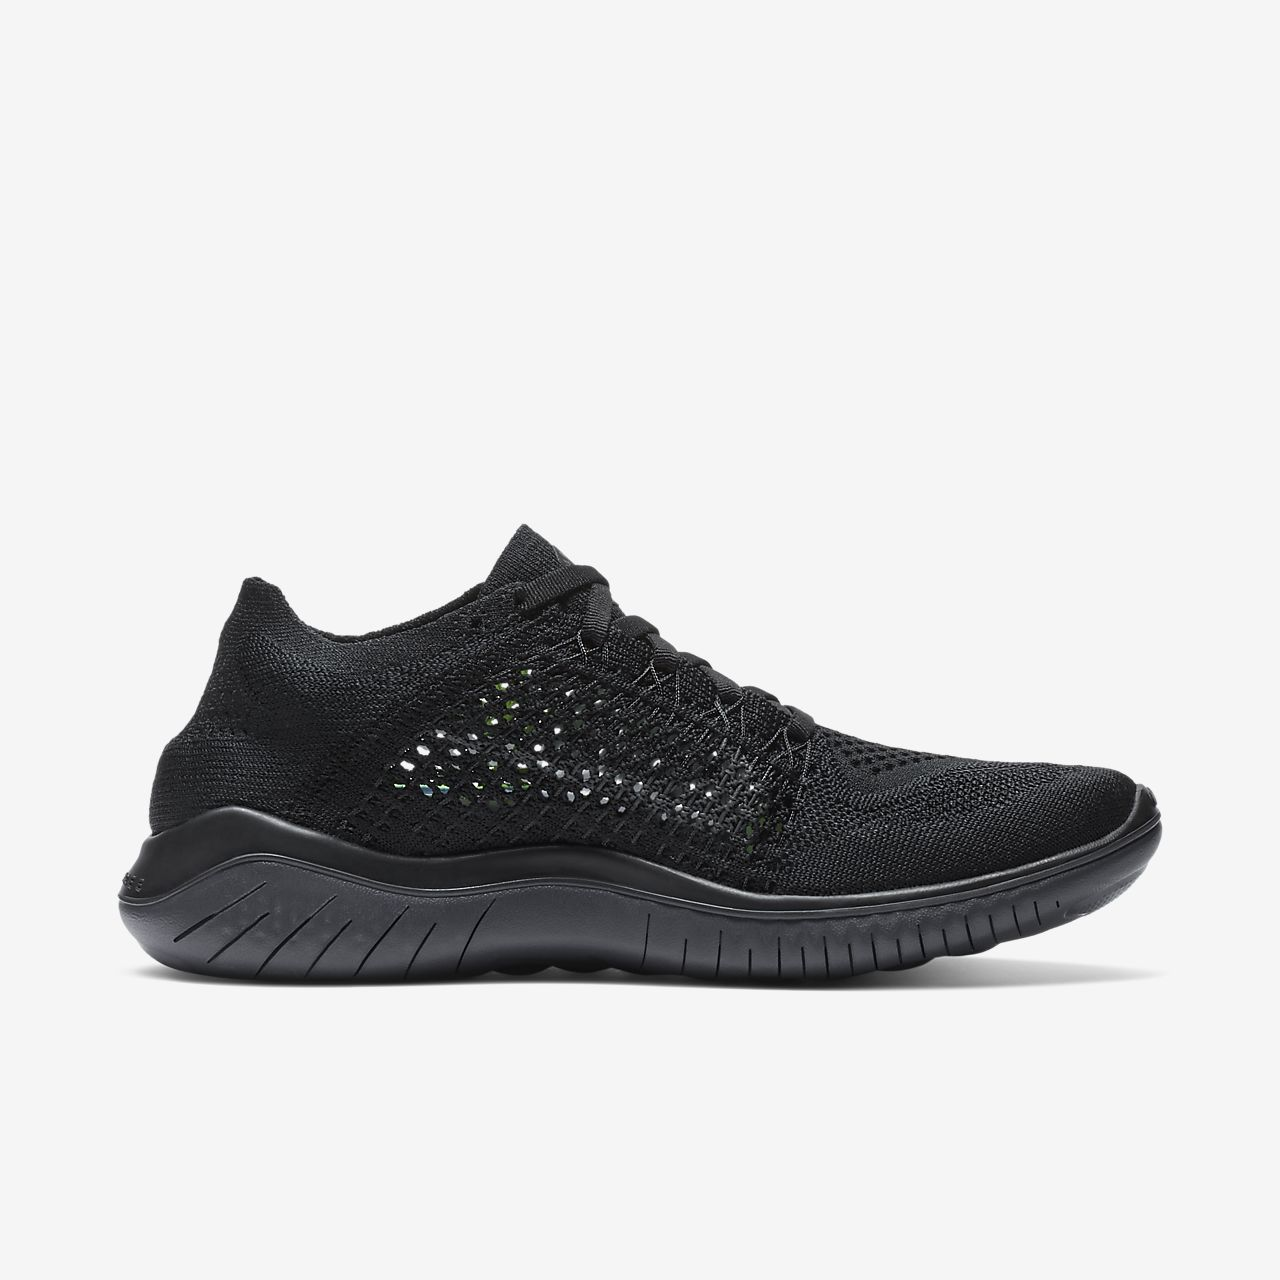 nike free rn women's black and white nz